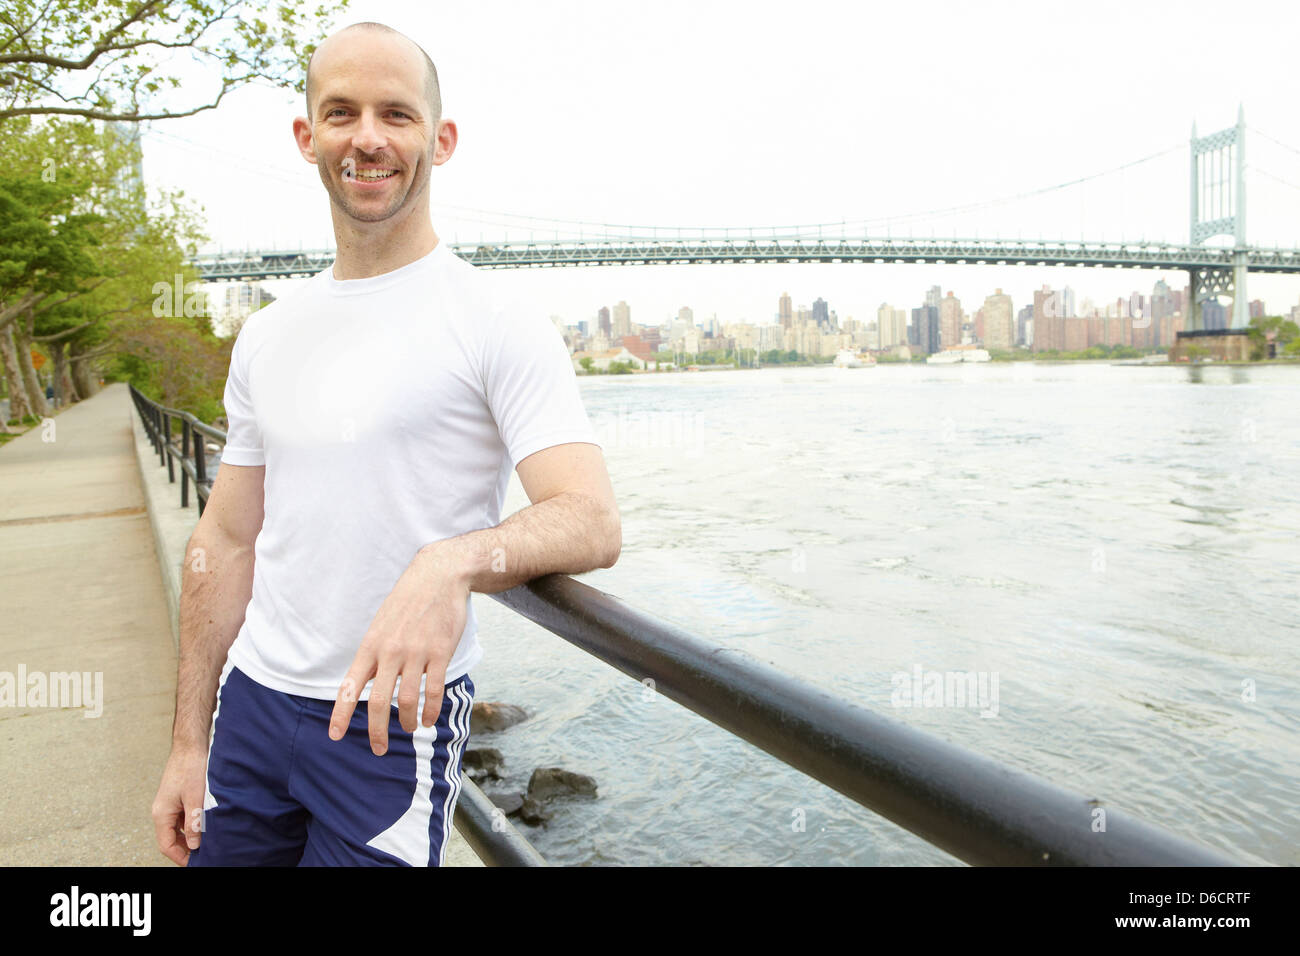 Man leaning by side railing next to river with bridge in background - Stock Image